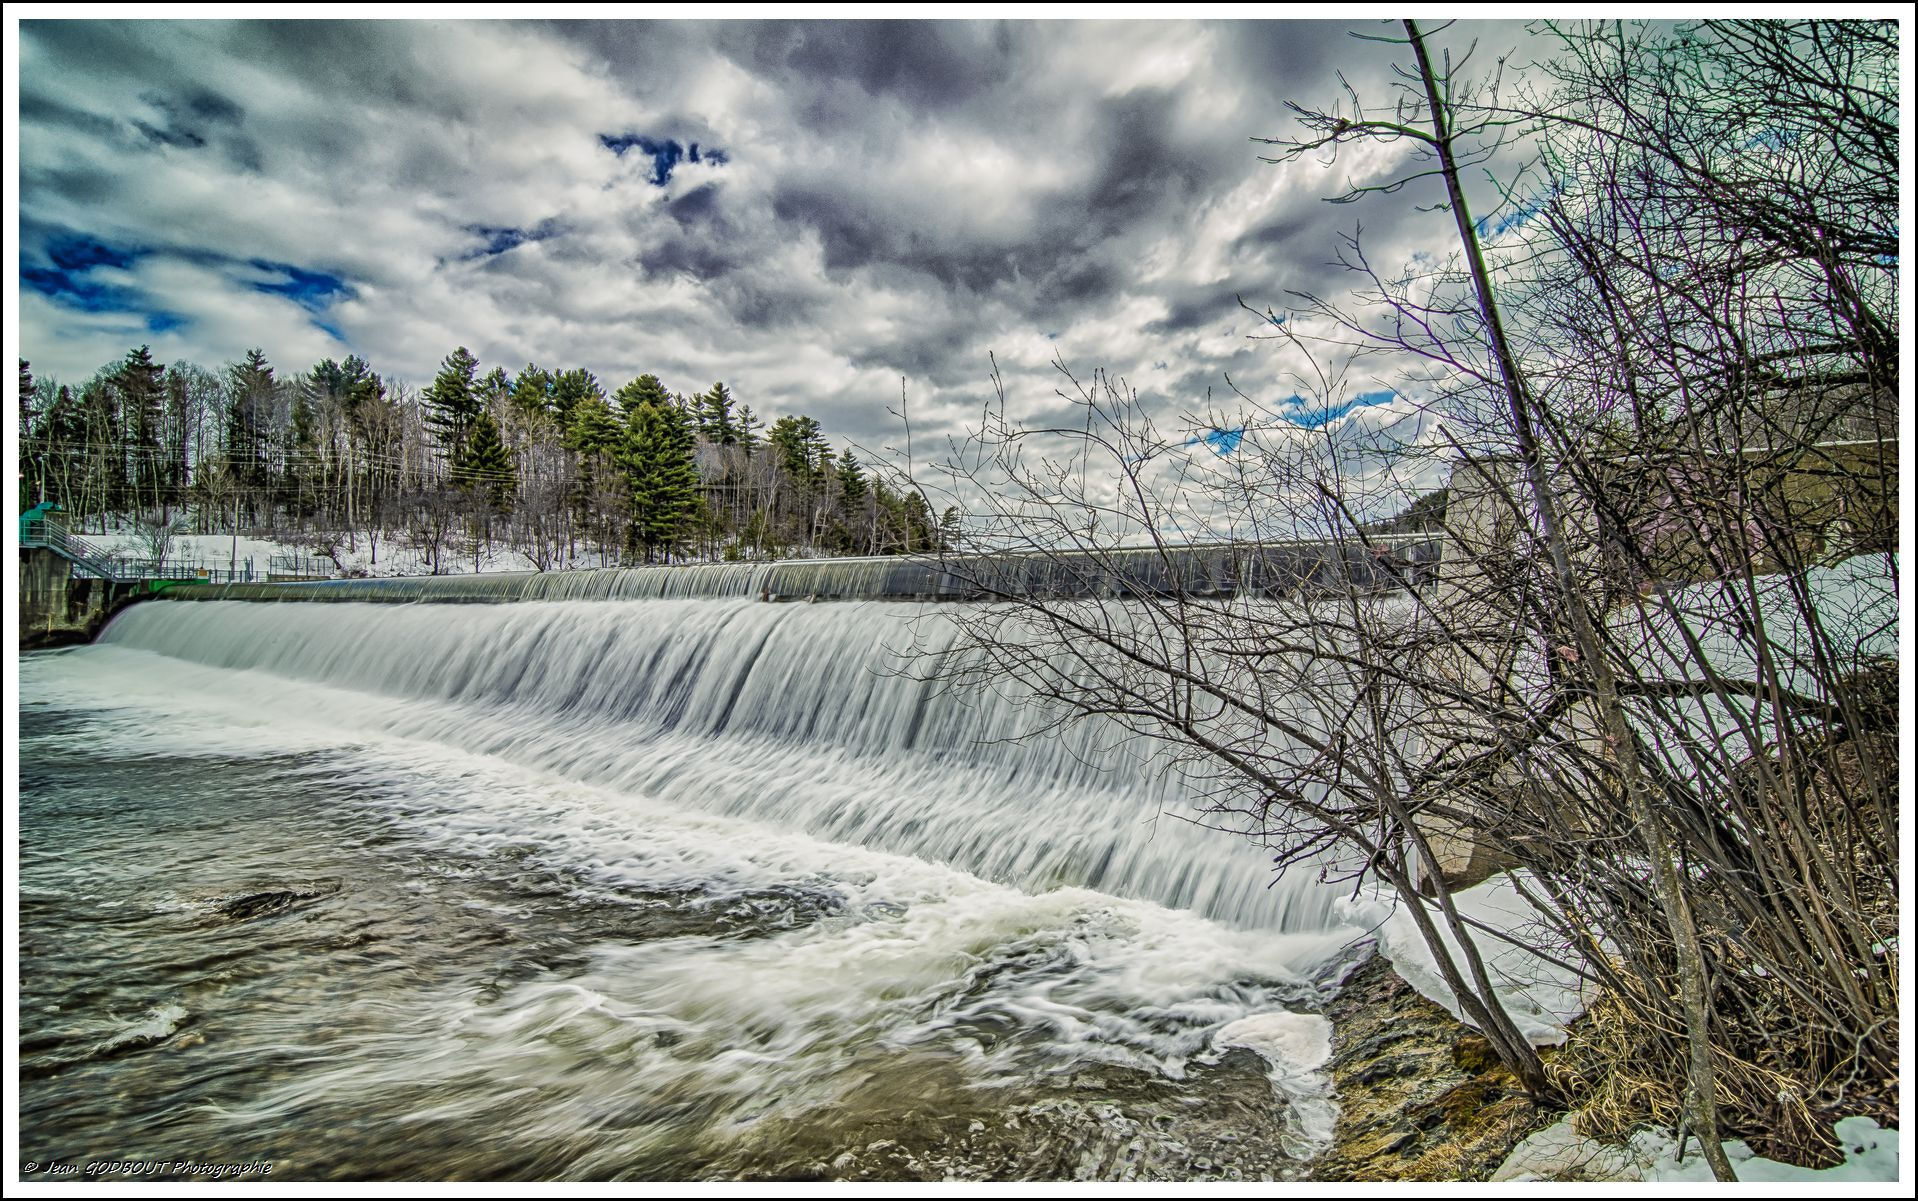 Photograph Dam - HDR by Jean Godbout on 500px